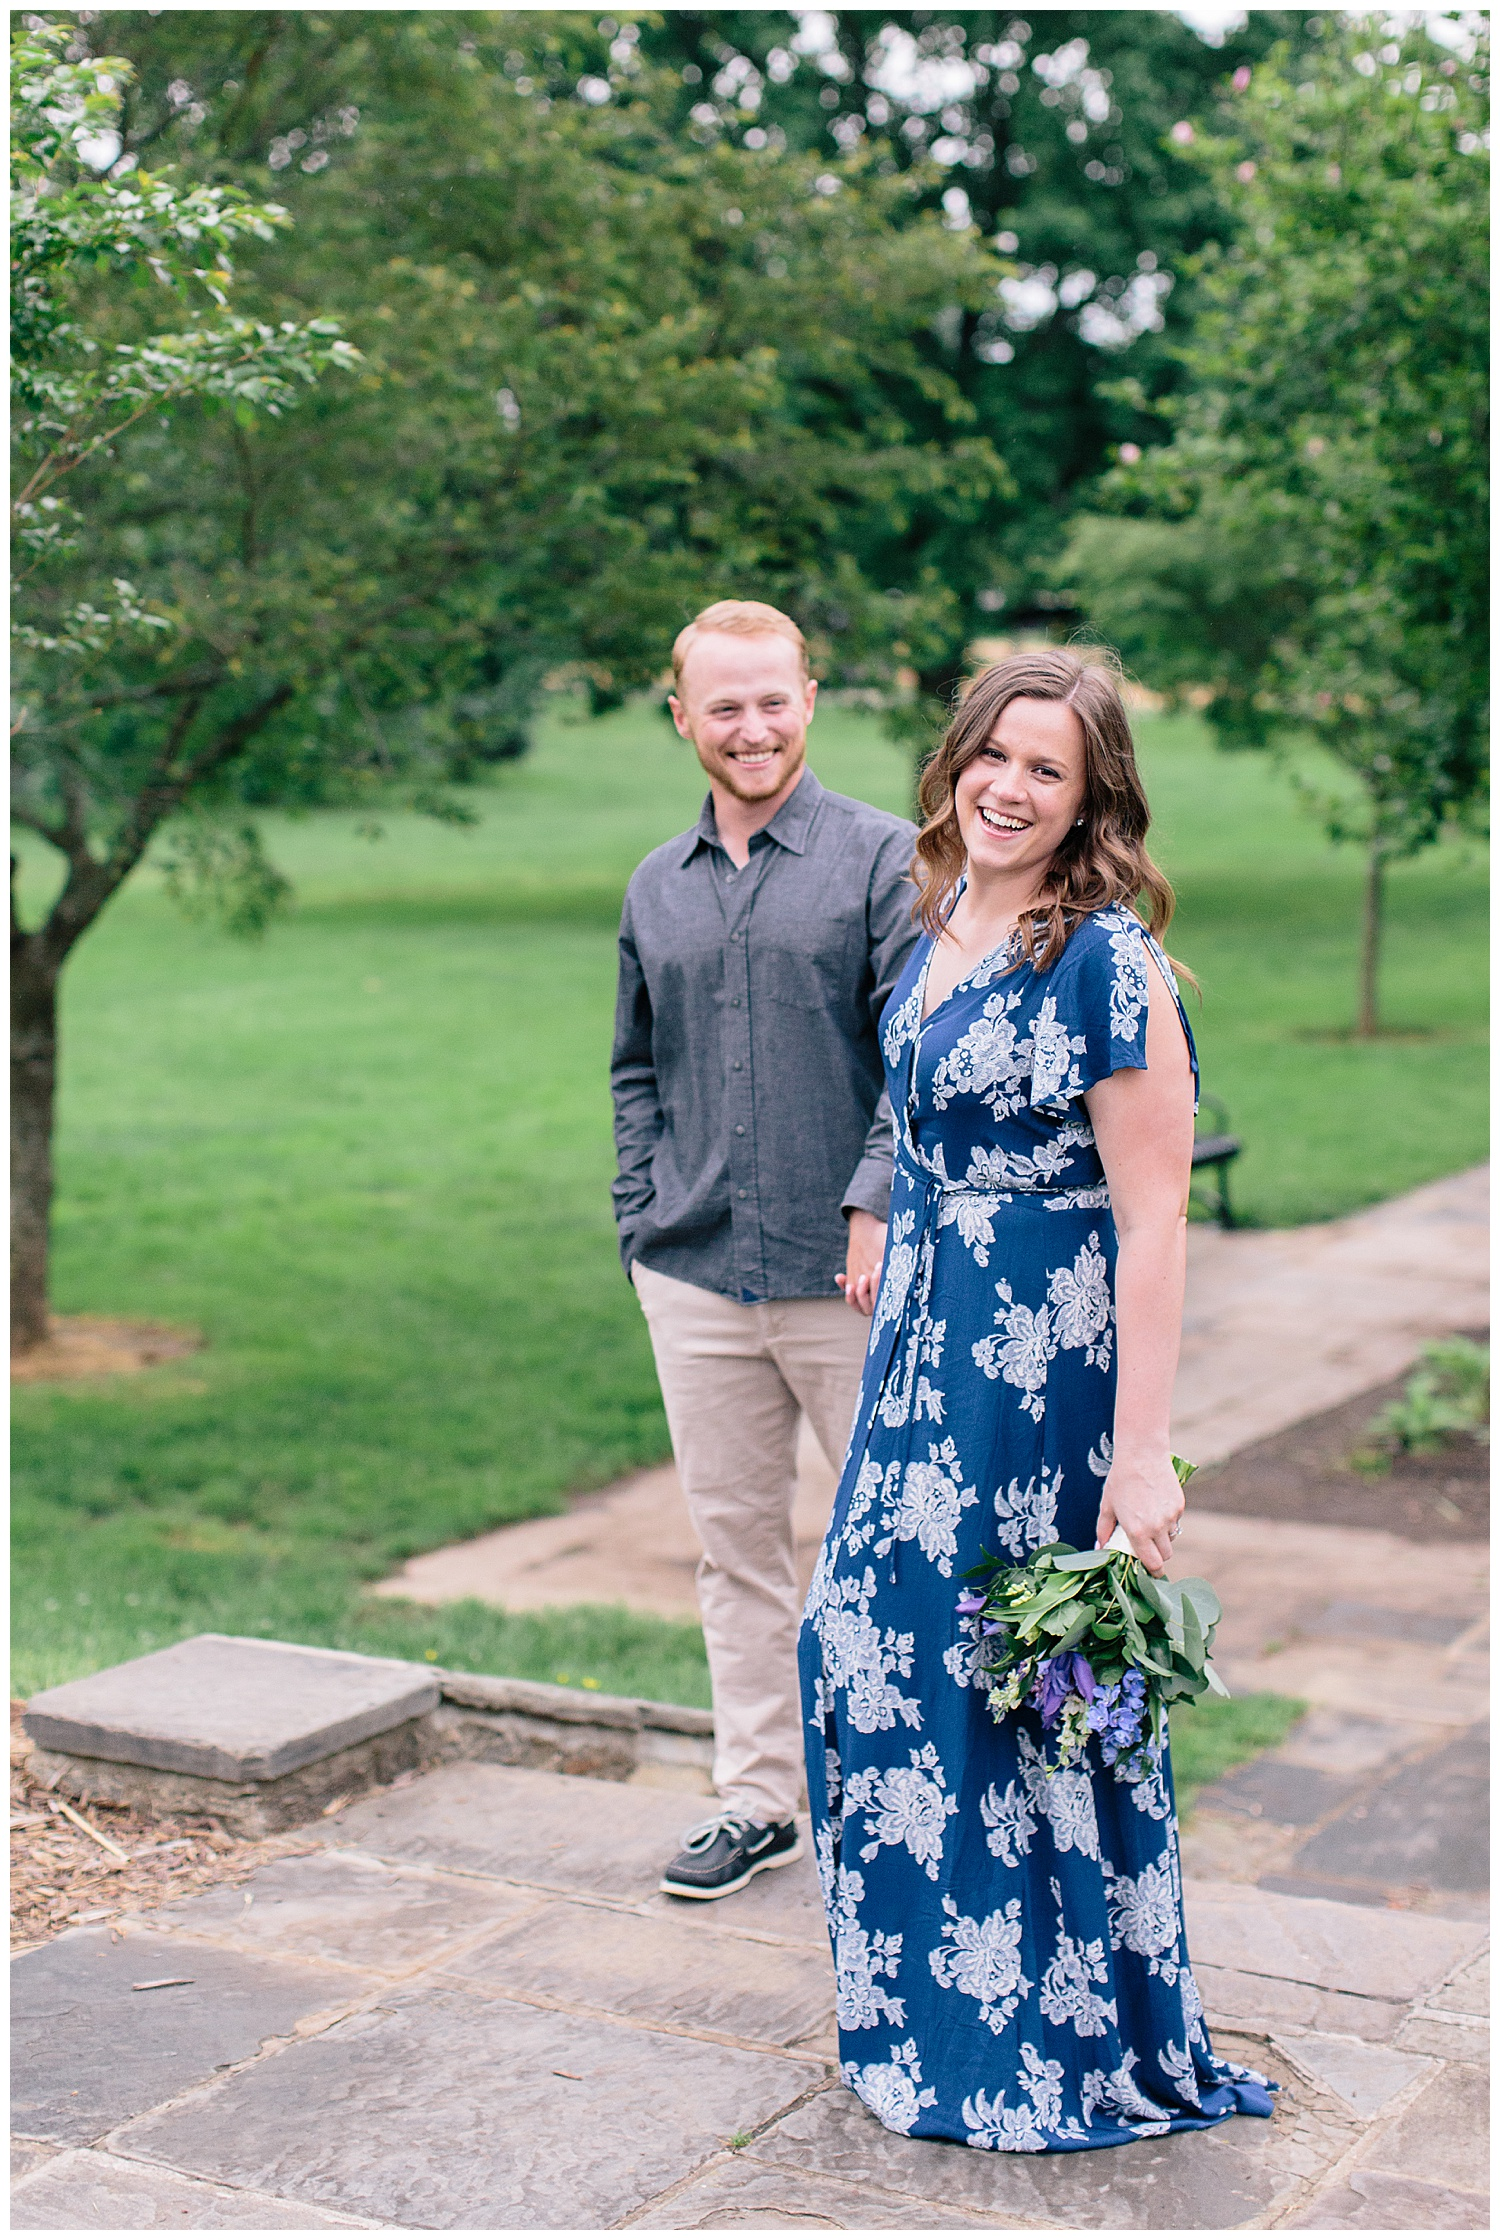 emily-belson-photography-frederick-md-engagement-22.jpg